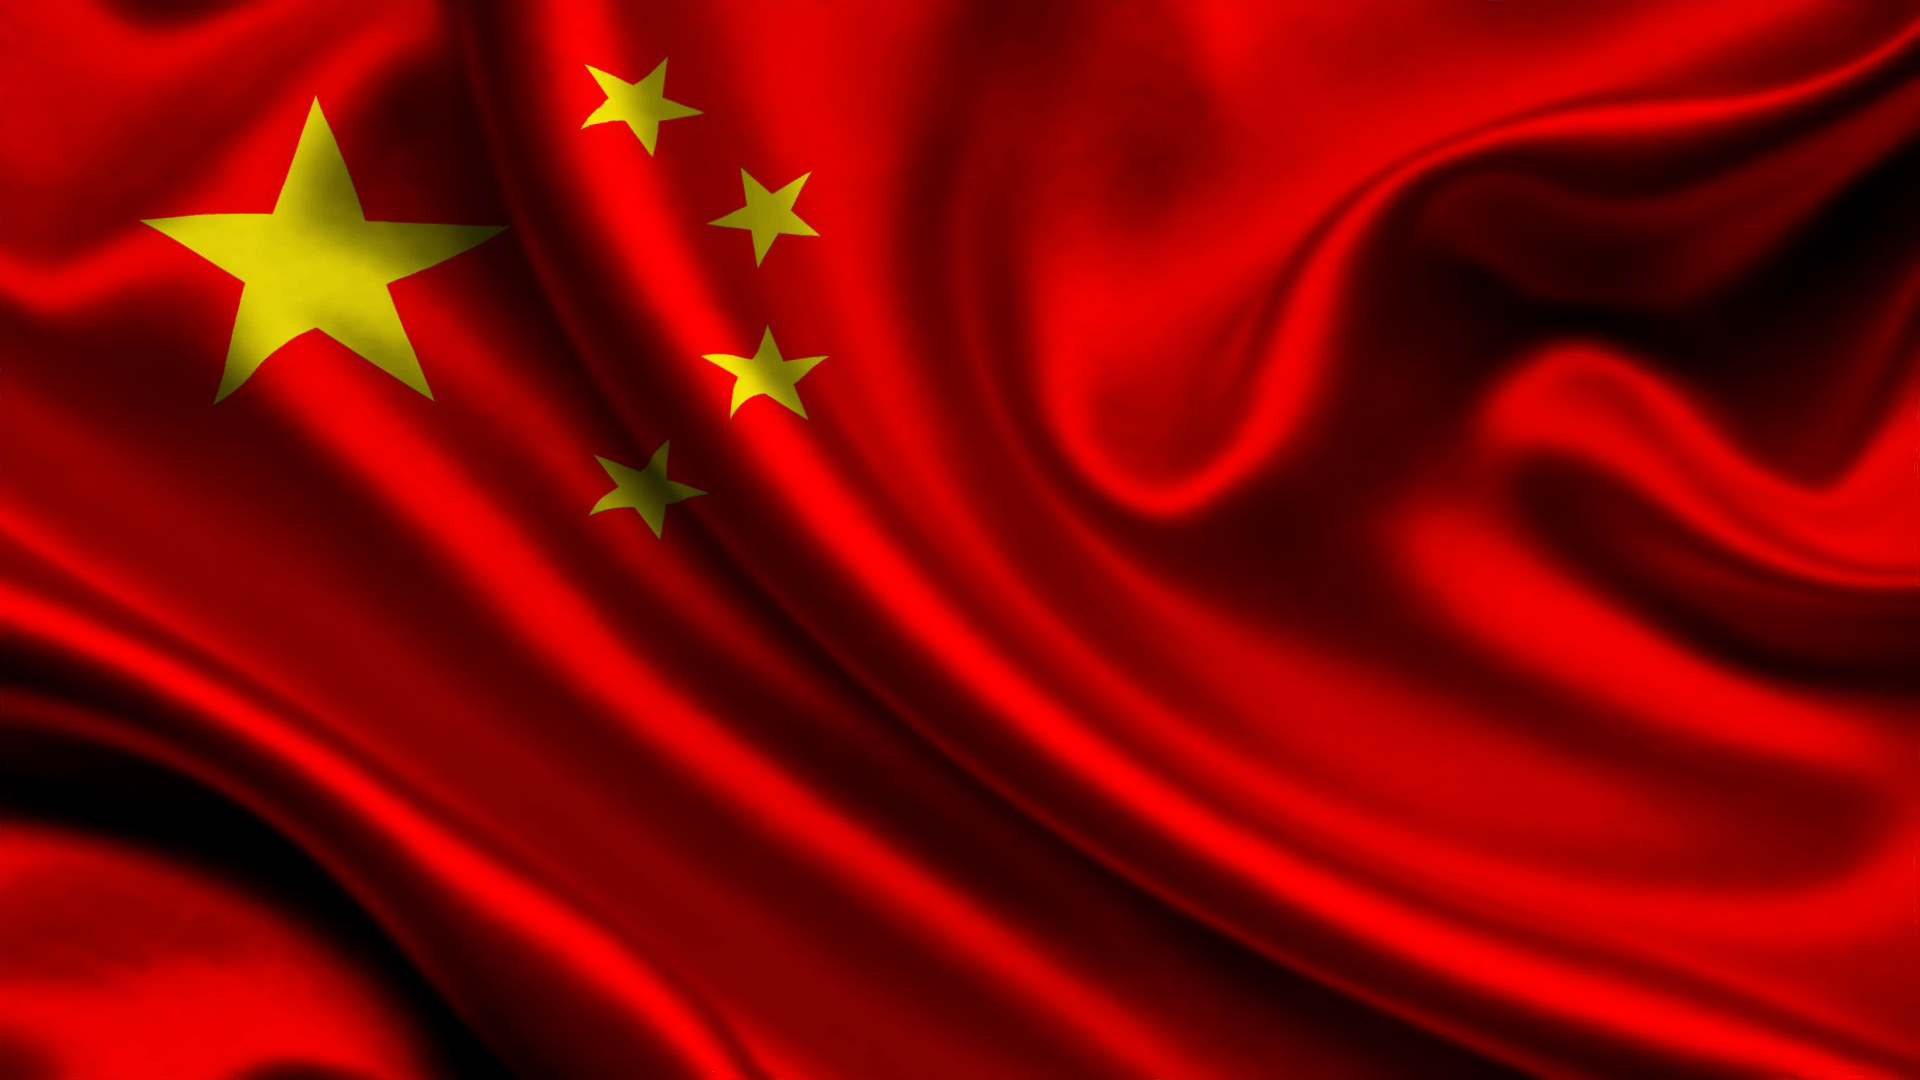 Images of Flag Of China | 1920x1080